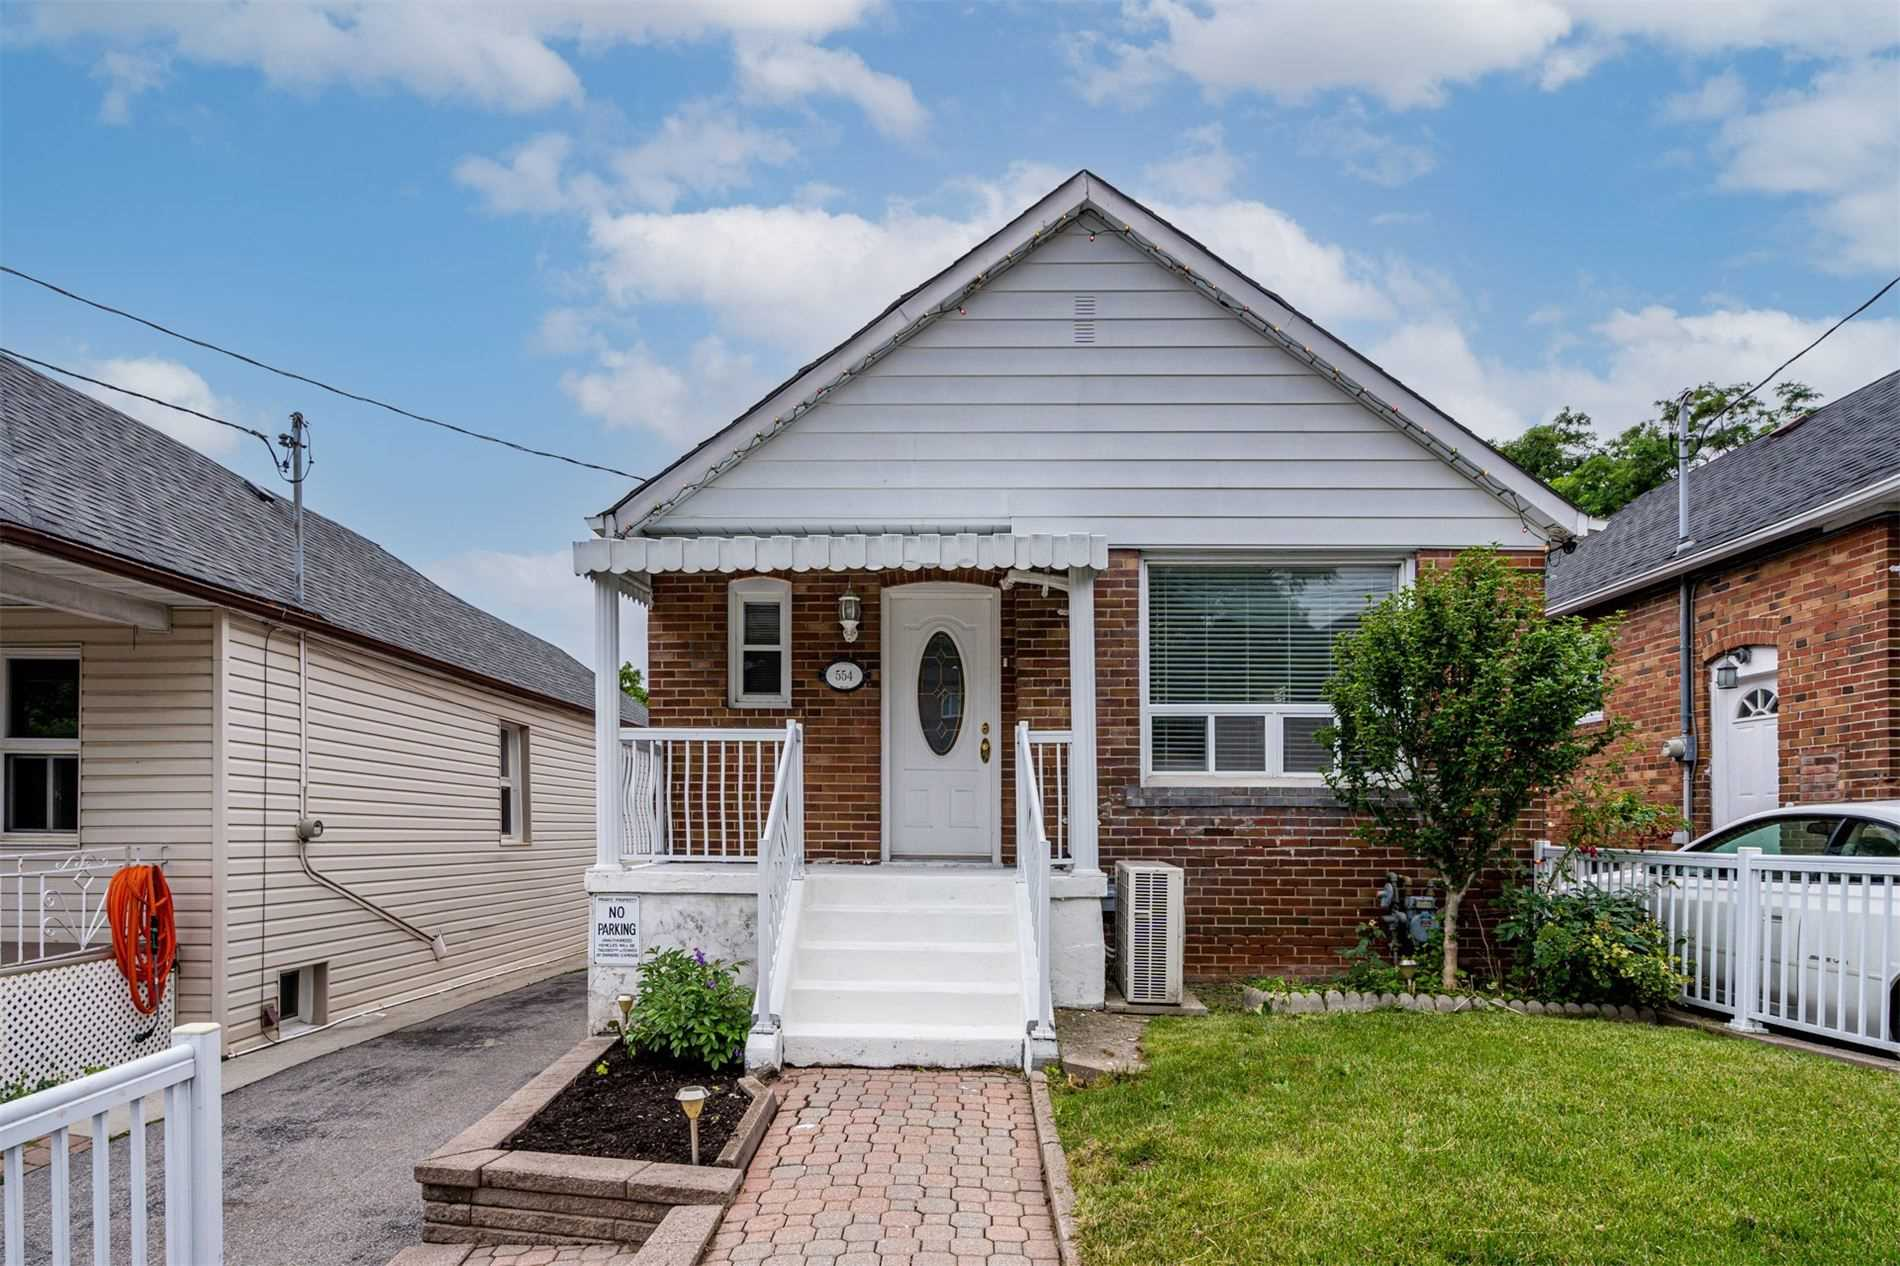 554 Caledonia Rd - Caledonia-Fairbank Detached for sale, 2 Bedrooms (W5305900) - #1